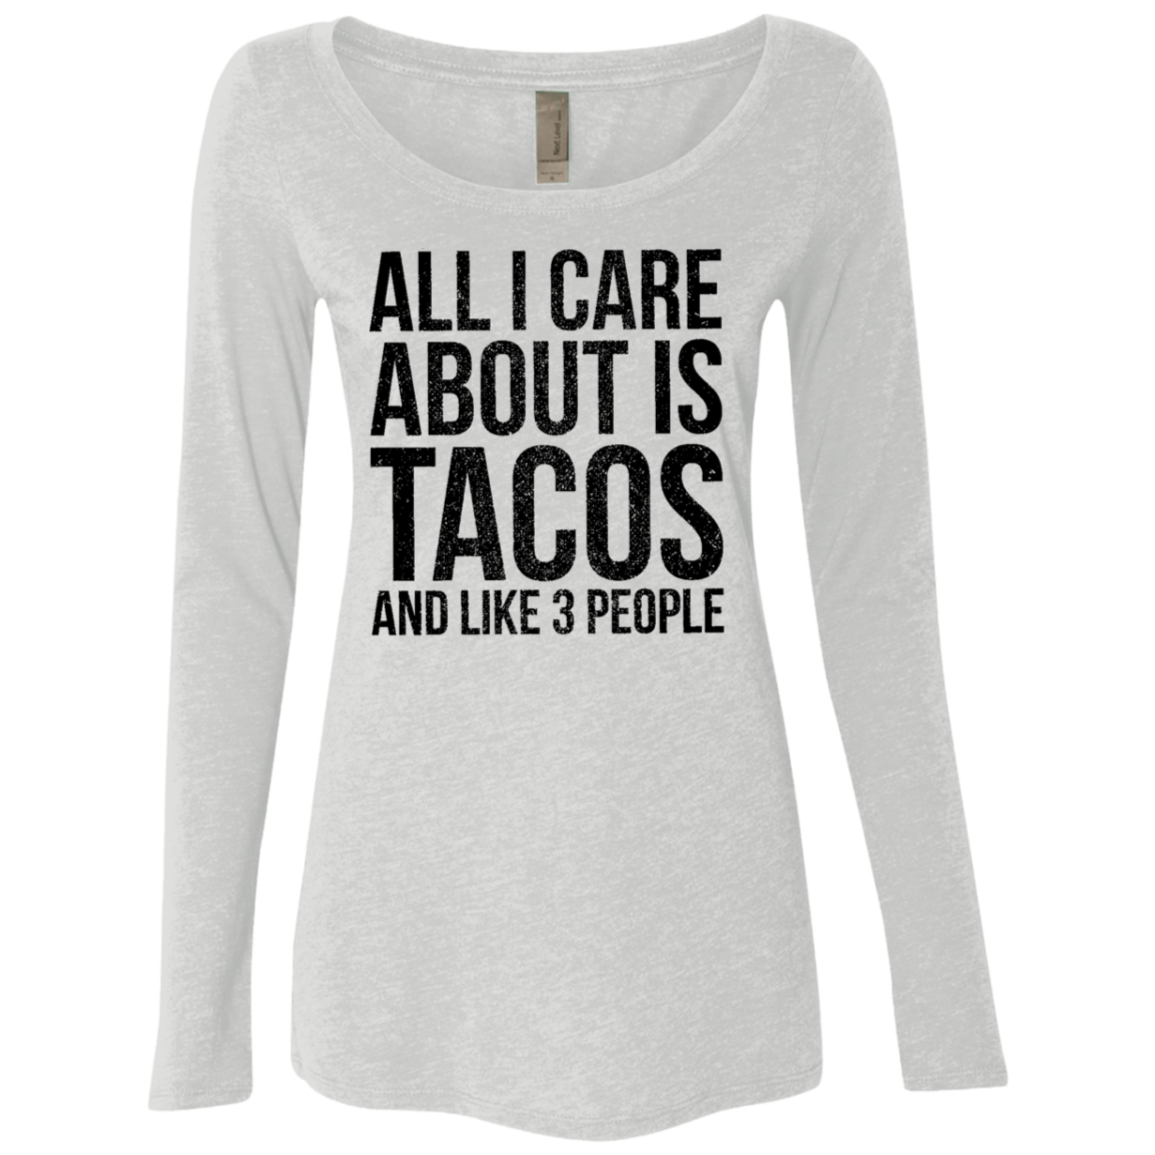 All I Care About is Tacos and Like 3 People Women's Long Sleeve Tee